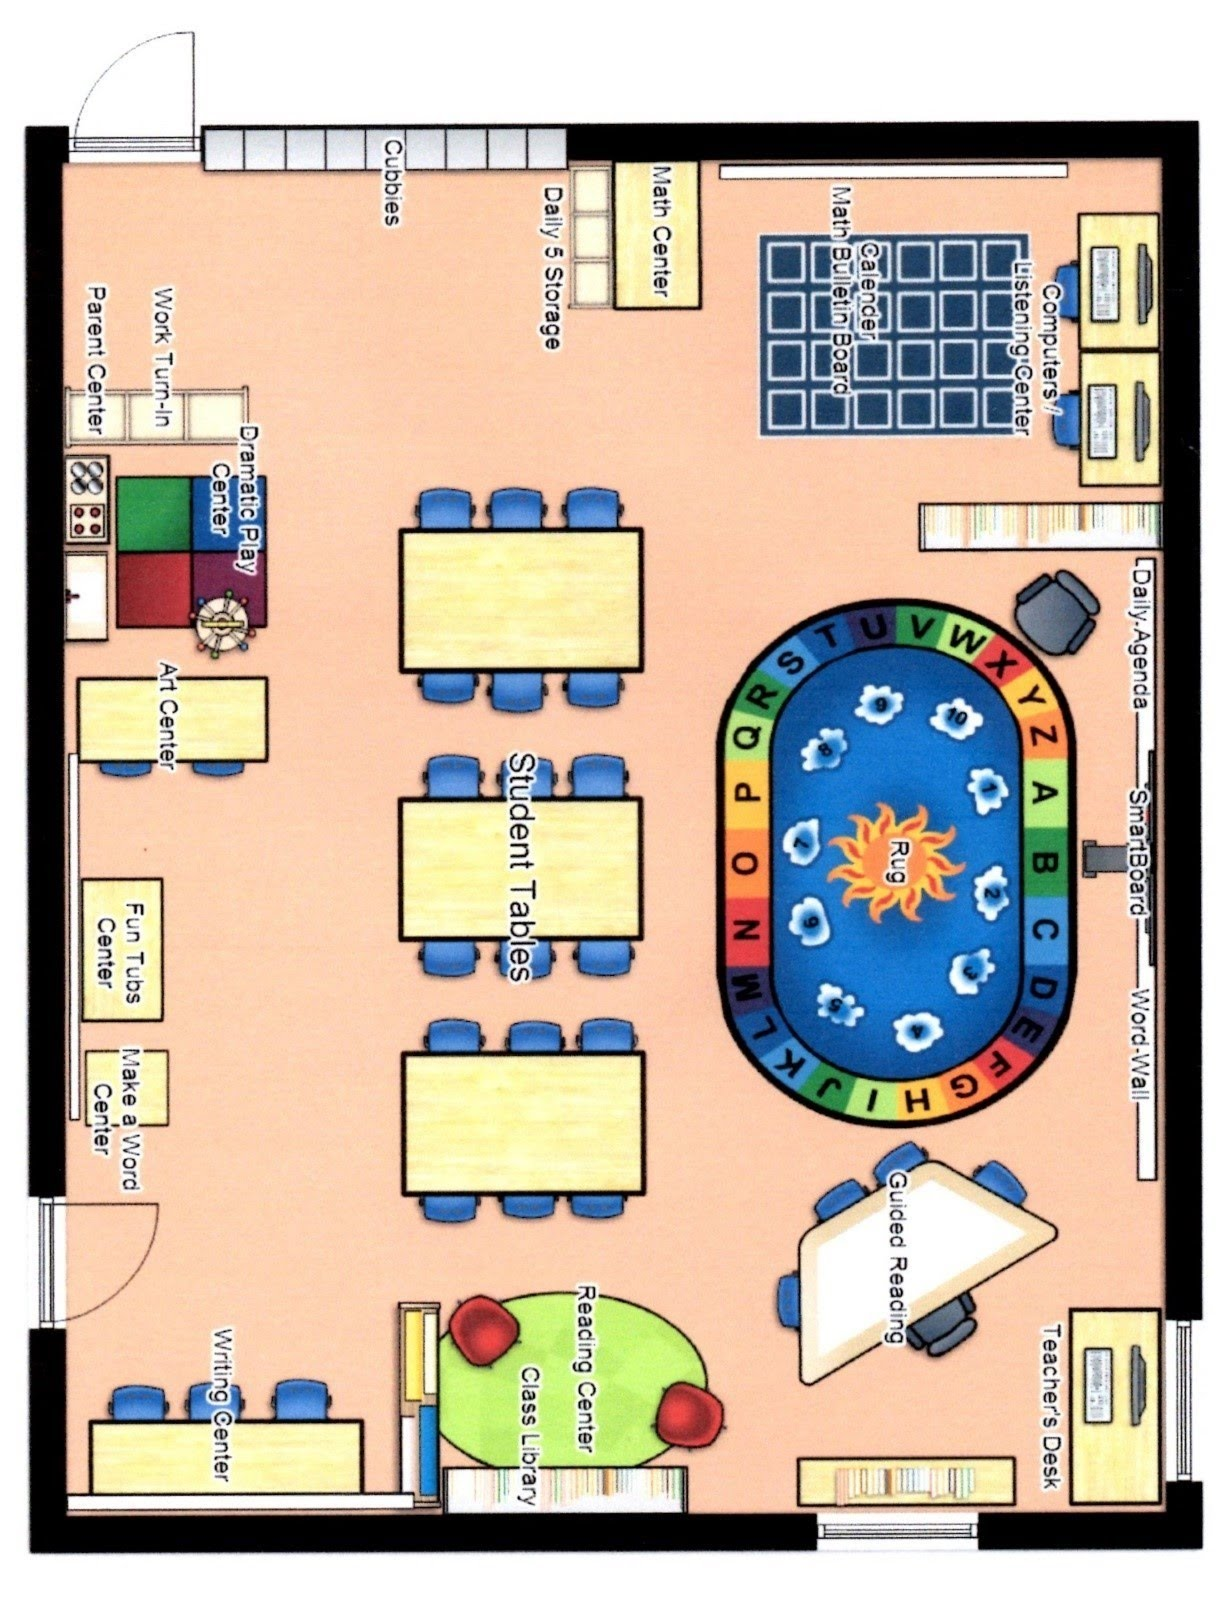 Classroom Design Effect On Learning : Office best images about classroom floorplan designs on